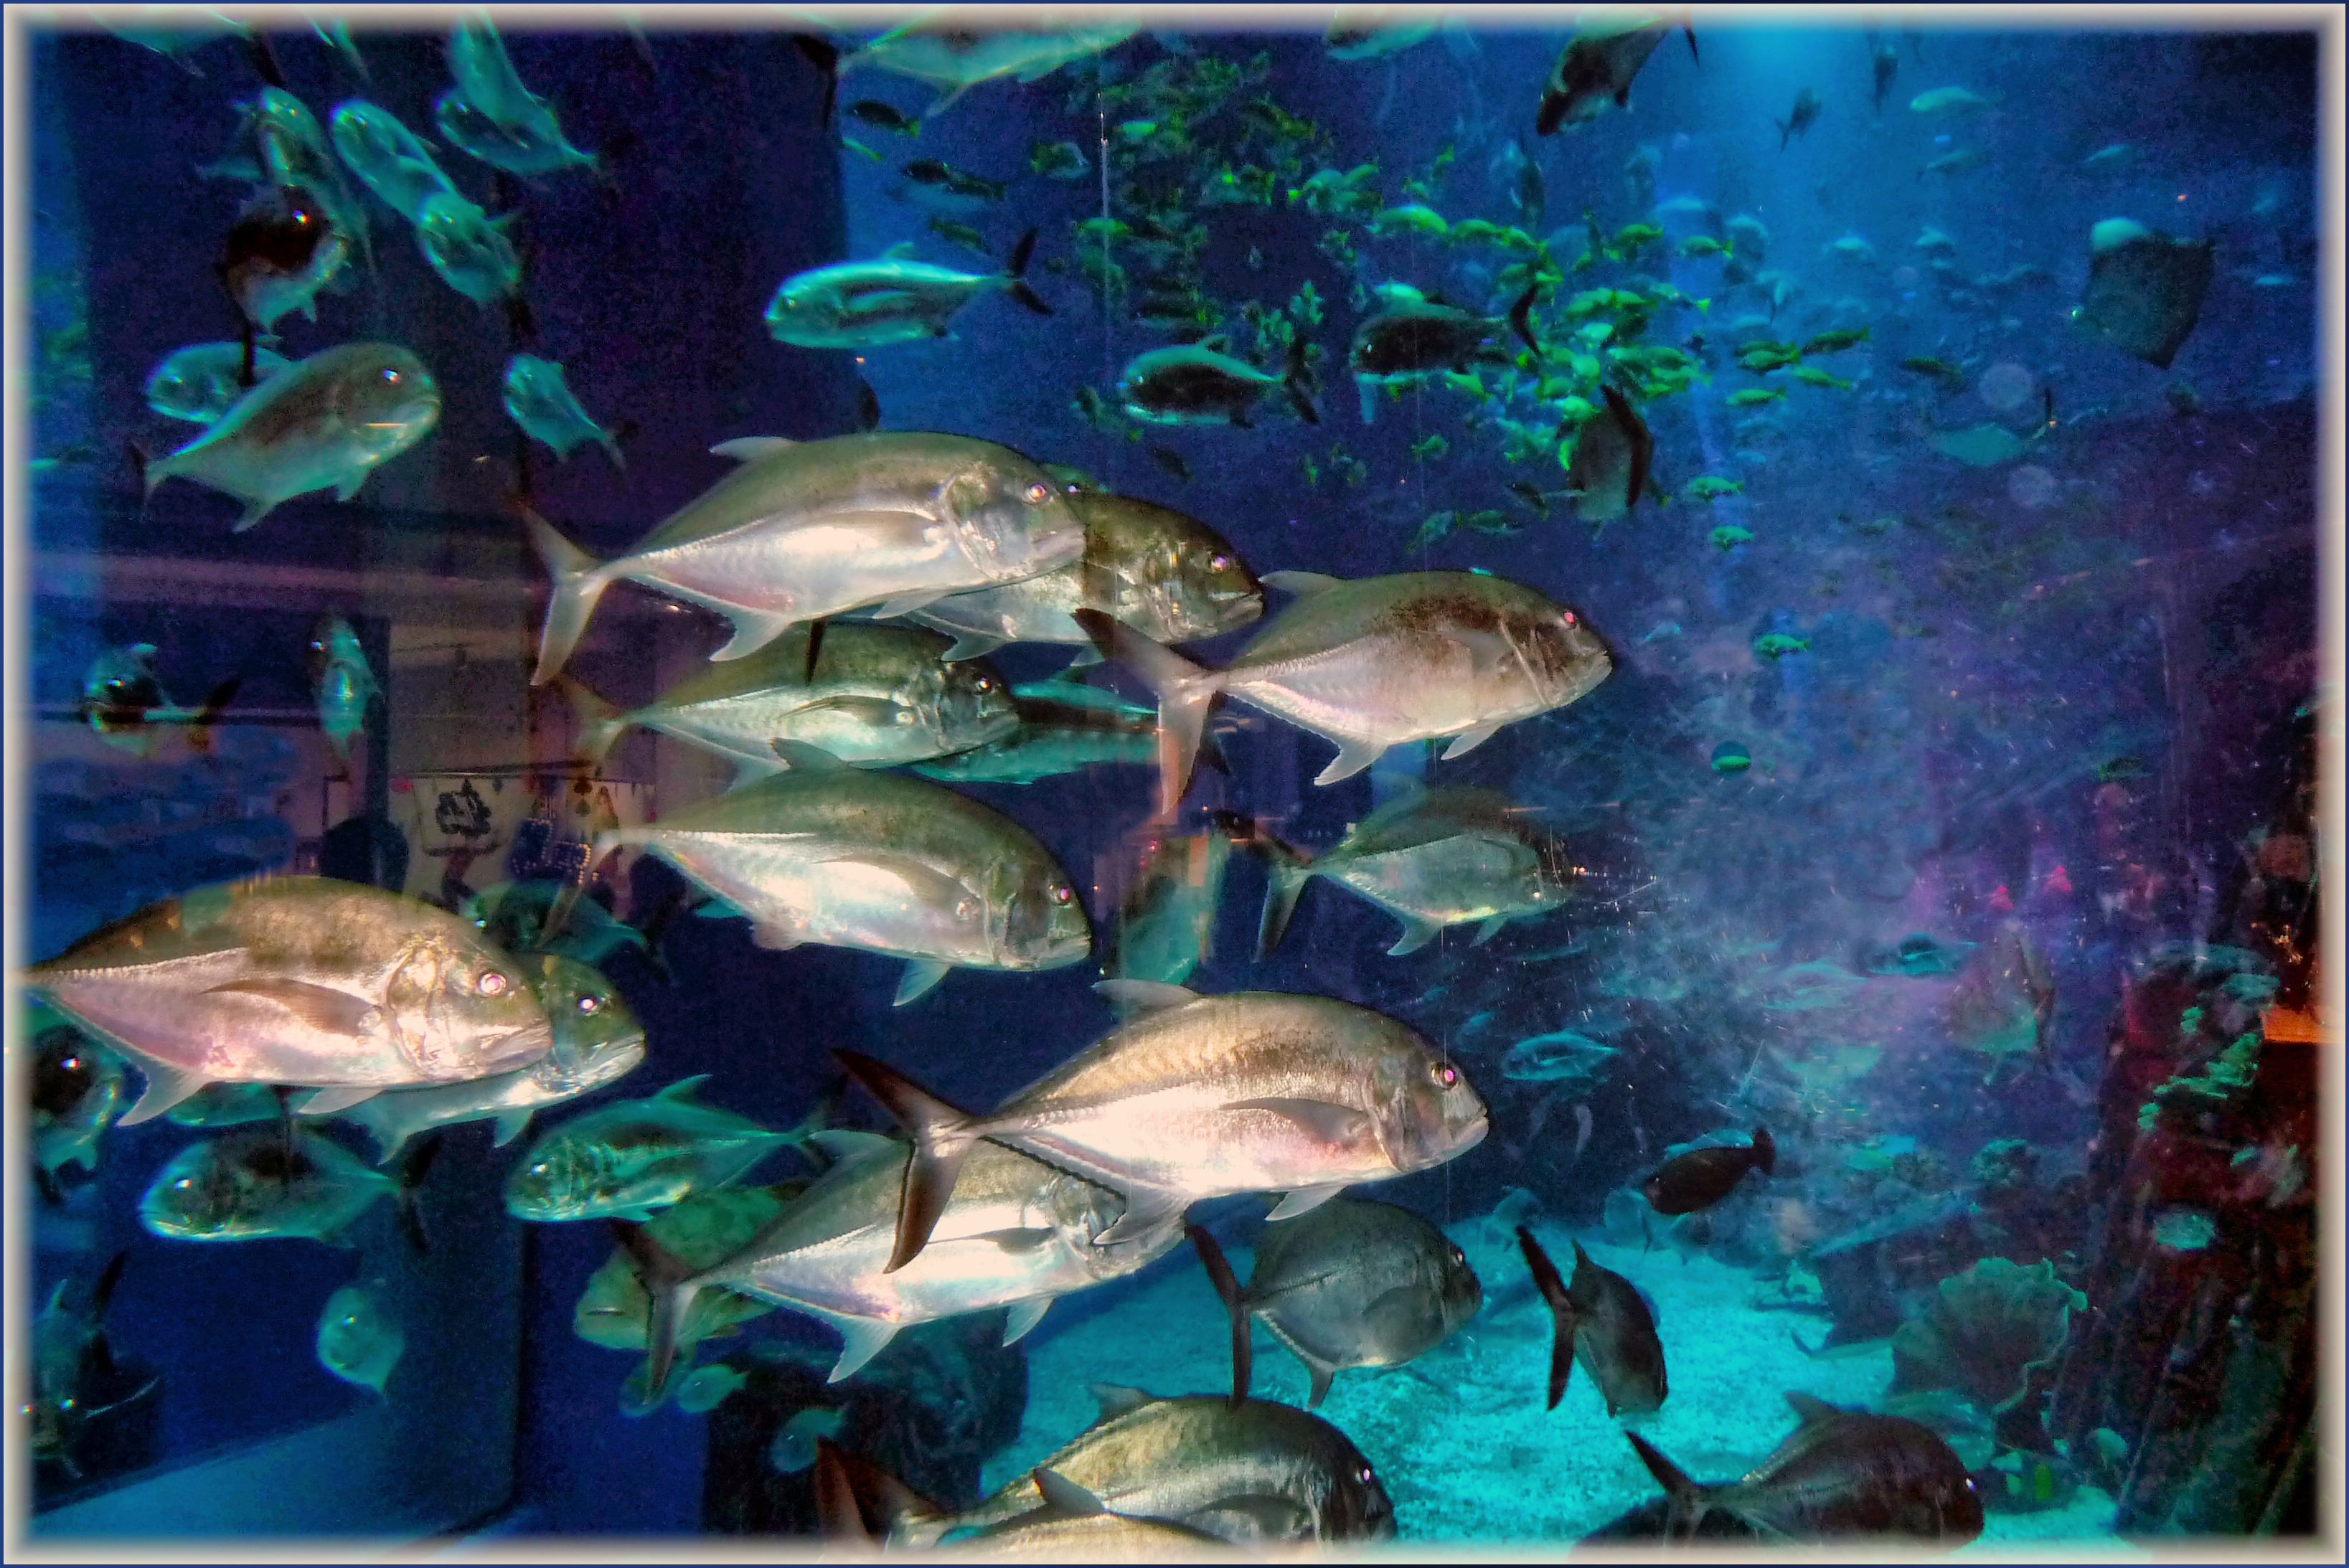 Freshwater Aquarium Fish In Dubai - File dubai aquarium panoramio jpg